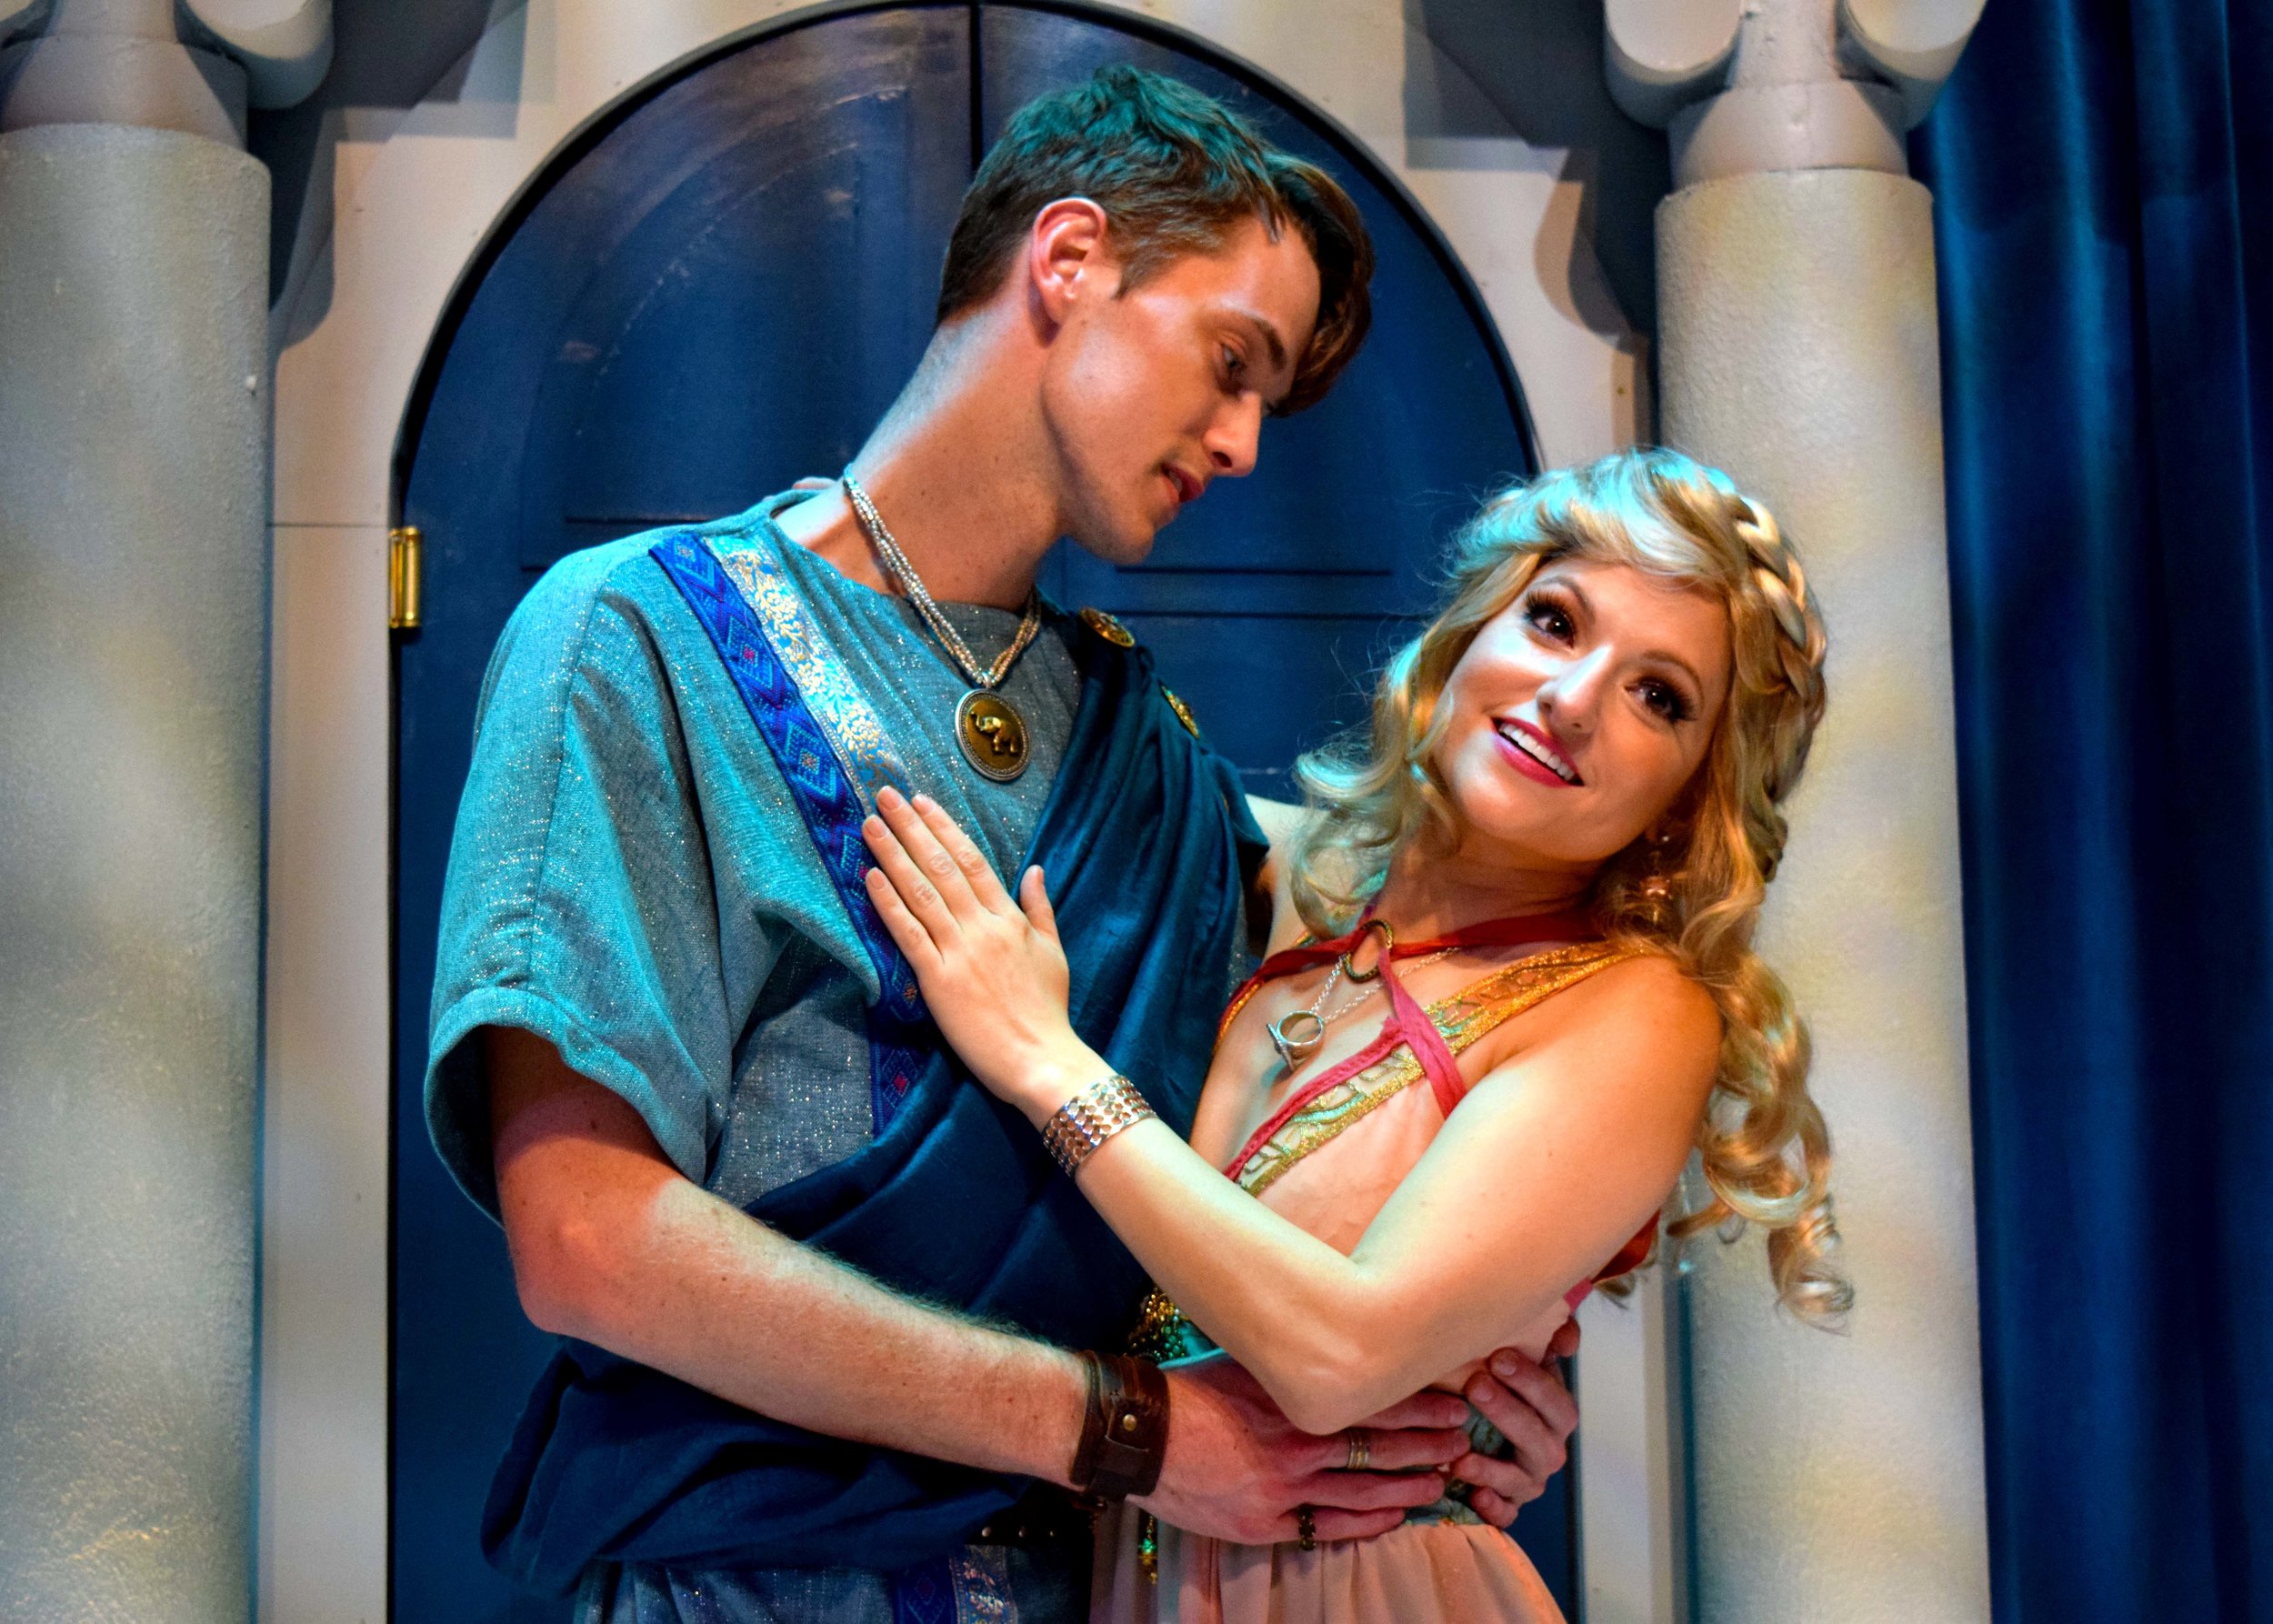 Hero (Michael Thomas Grant) and Philia (Nicole Kaplan) in A Funny Thing Happened On The Way To The Forum at the Garry Marshall Theatre. Photo by Chelsea Sutton.